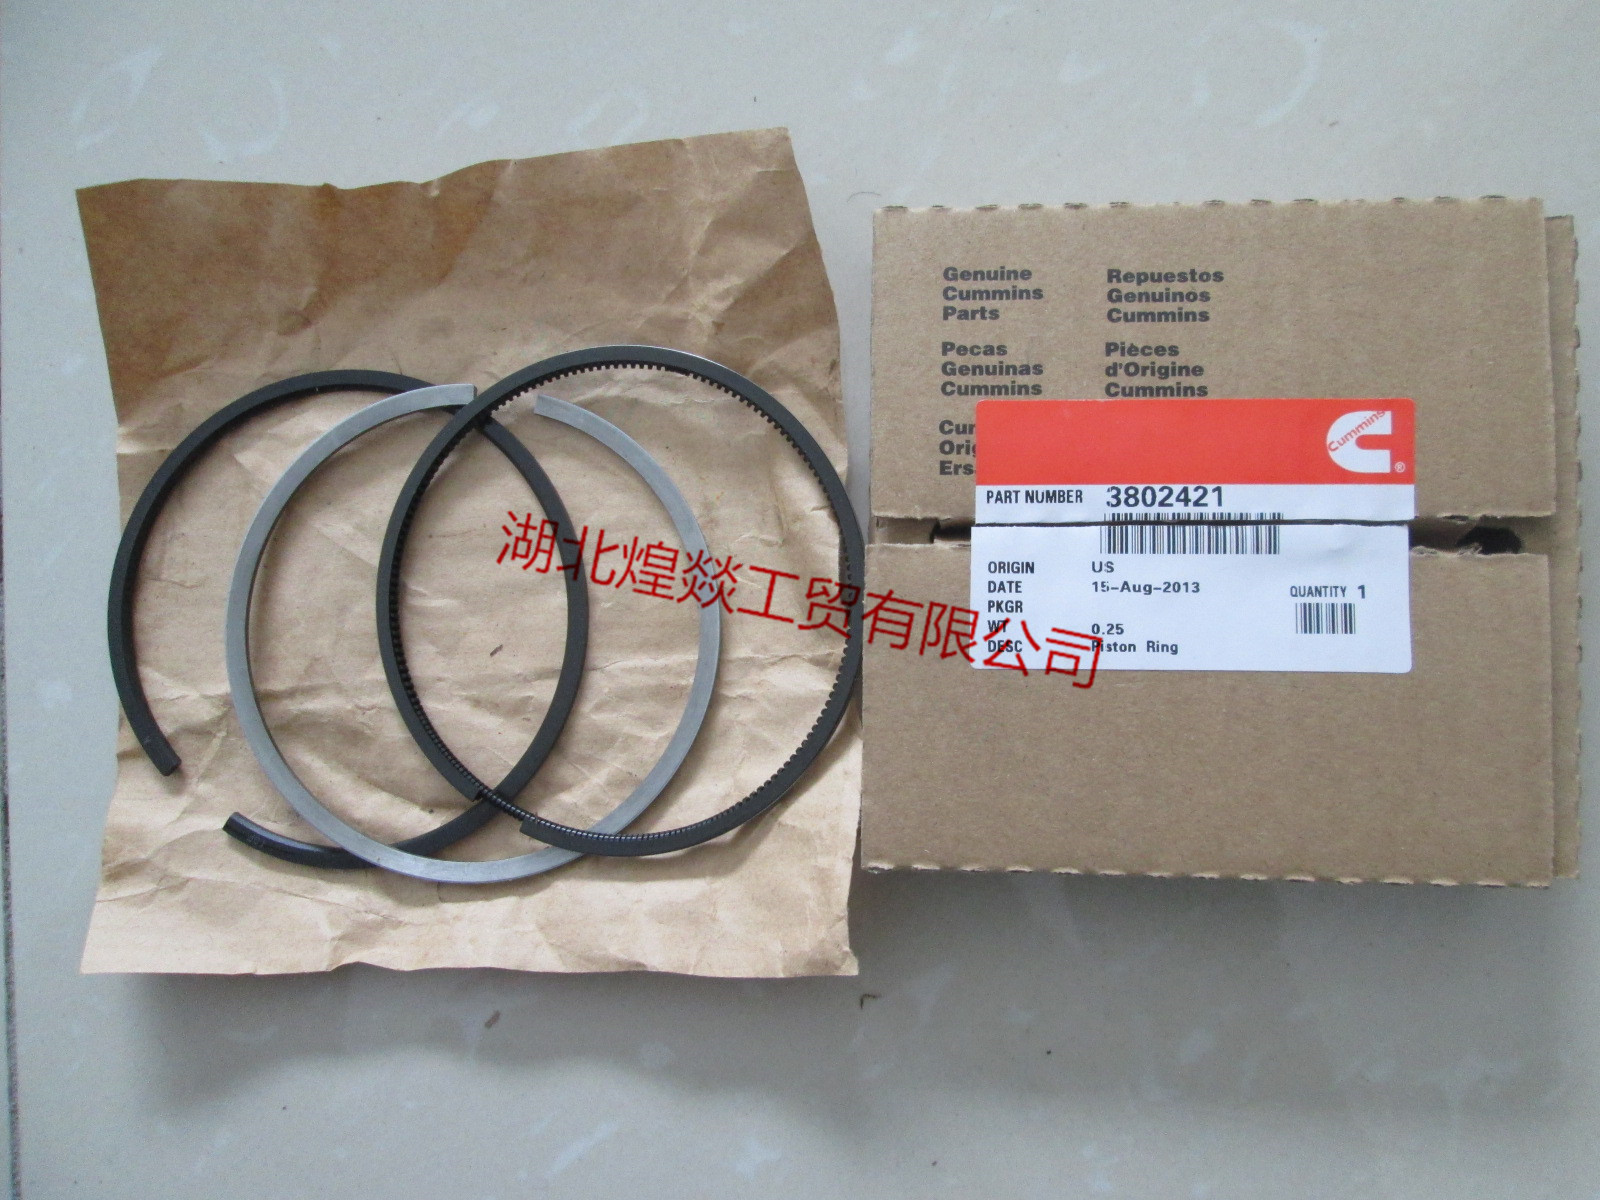 Cummins Engine Piston Ring3802421